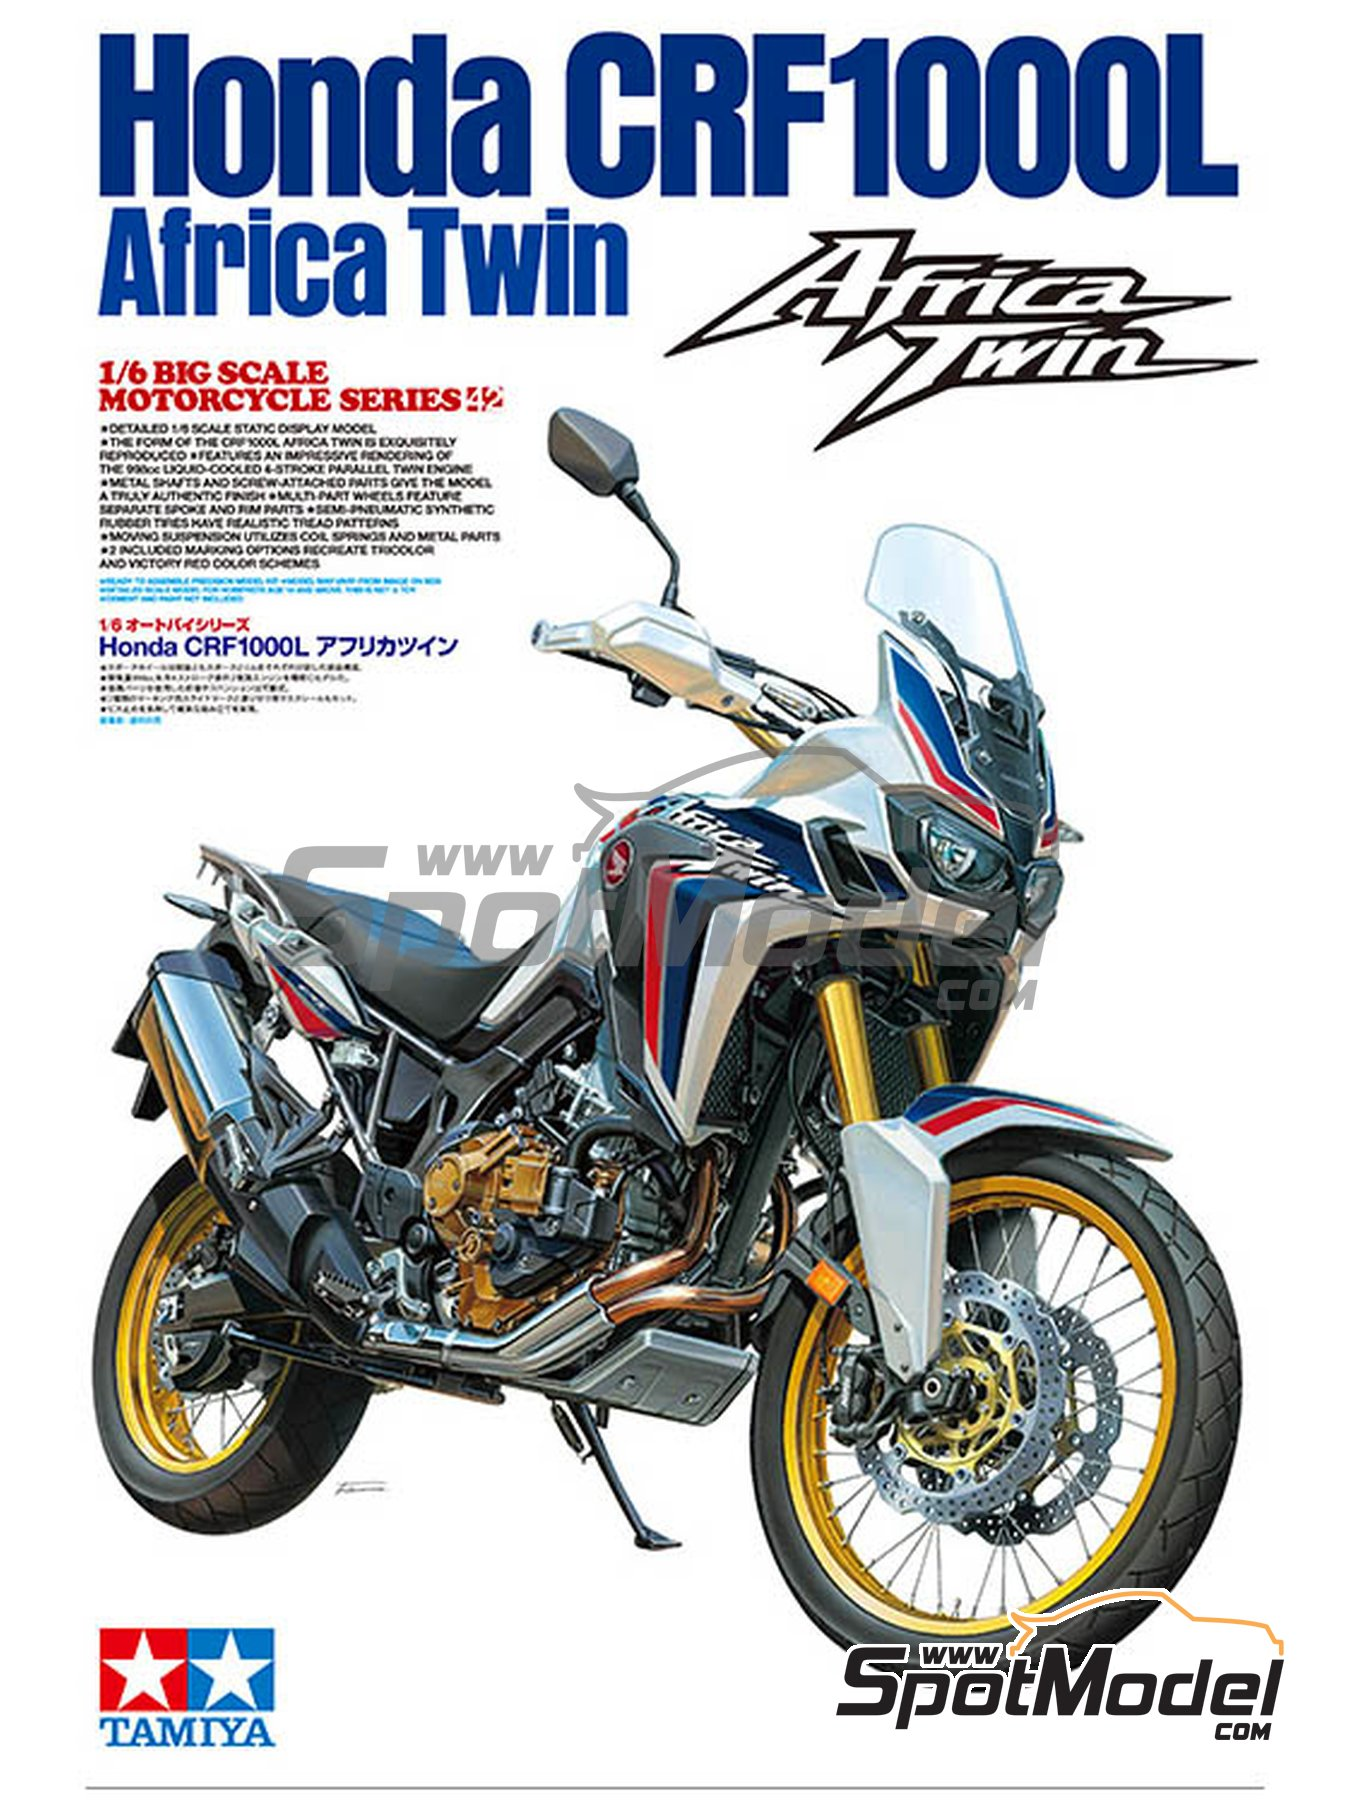 Honda CRF 1000L Africa Twin Enduro | Model bike kit in 1/6 scale manufactured by Tamiya (ref. TAM16042) image